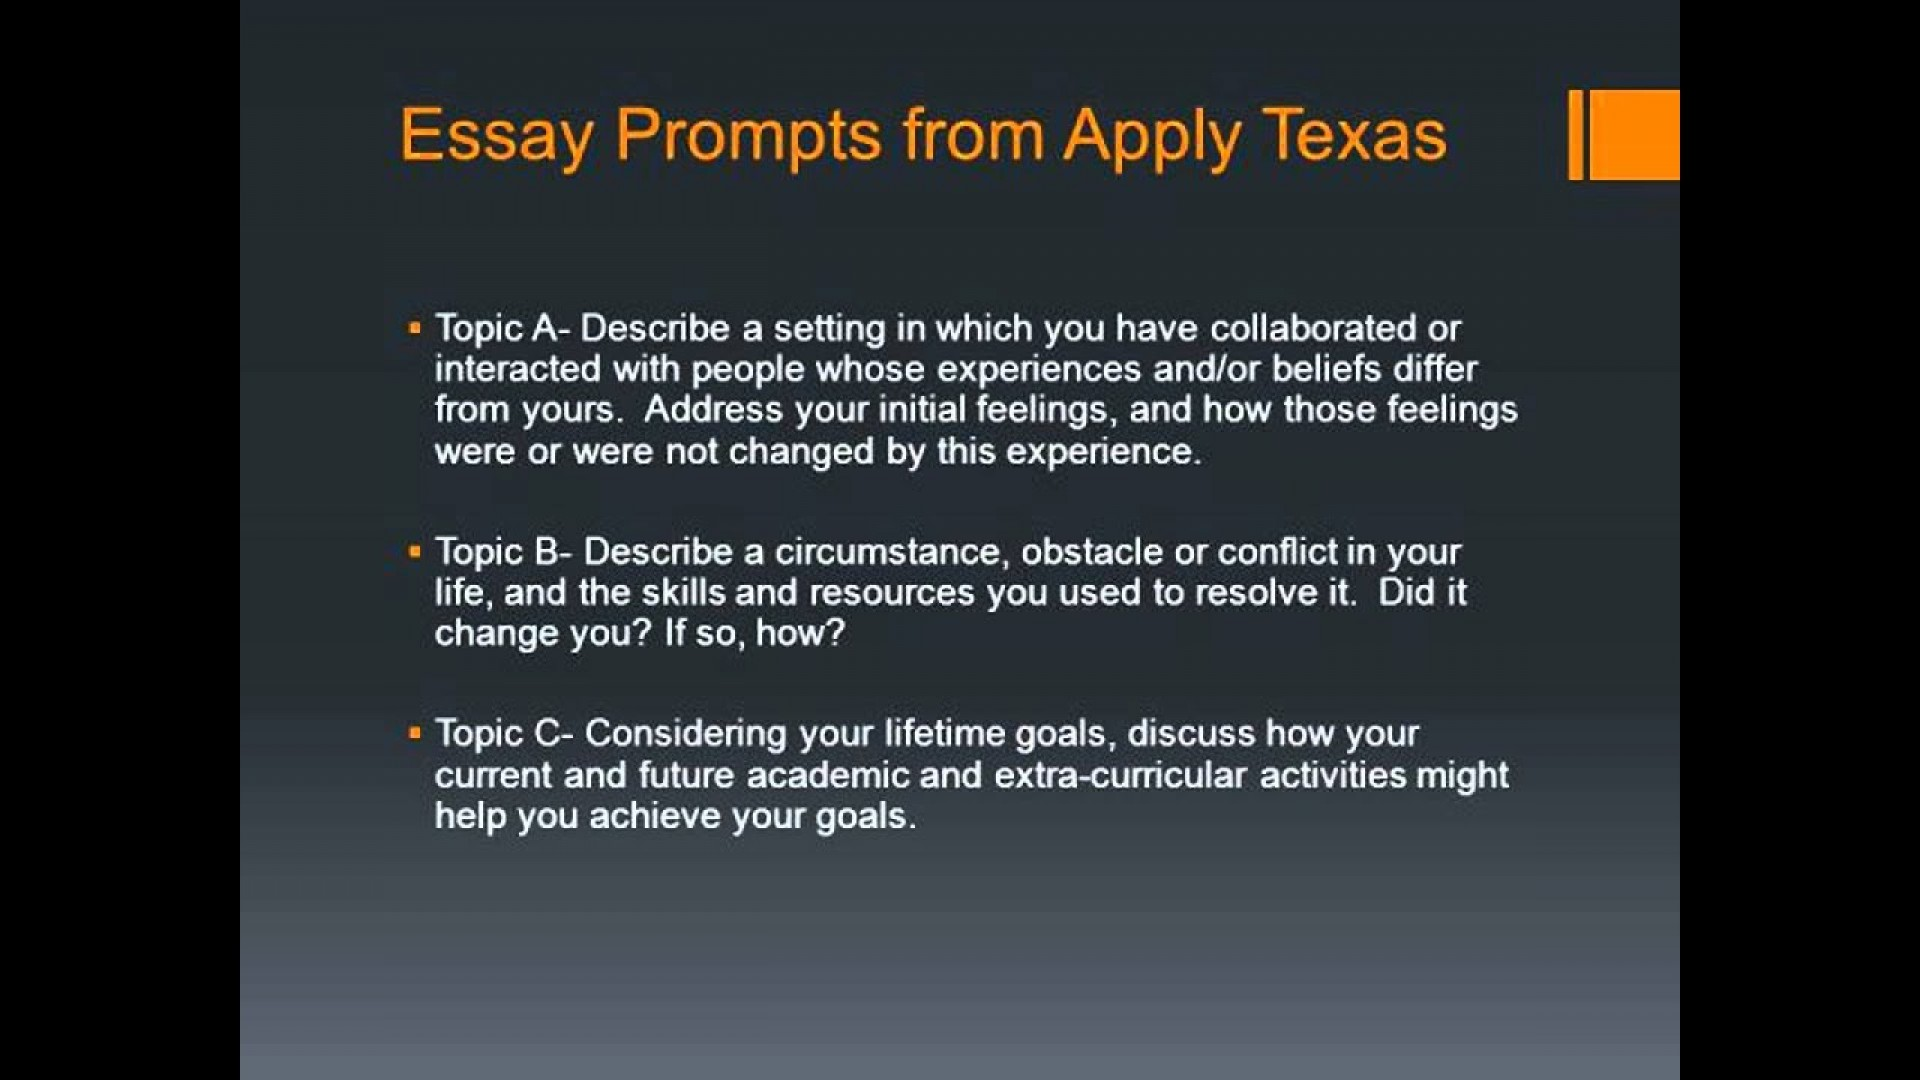 005 Maxresdefault Essay Example Apply Texas Top Essays Word Limit Examples 2016 2019 1920